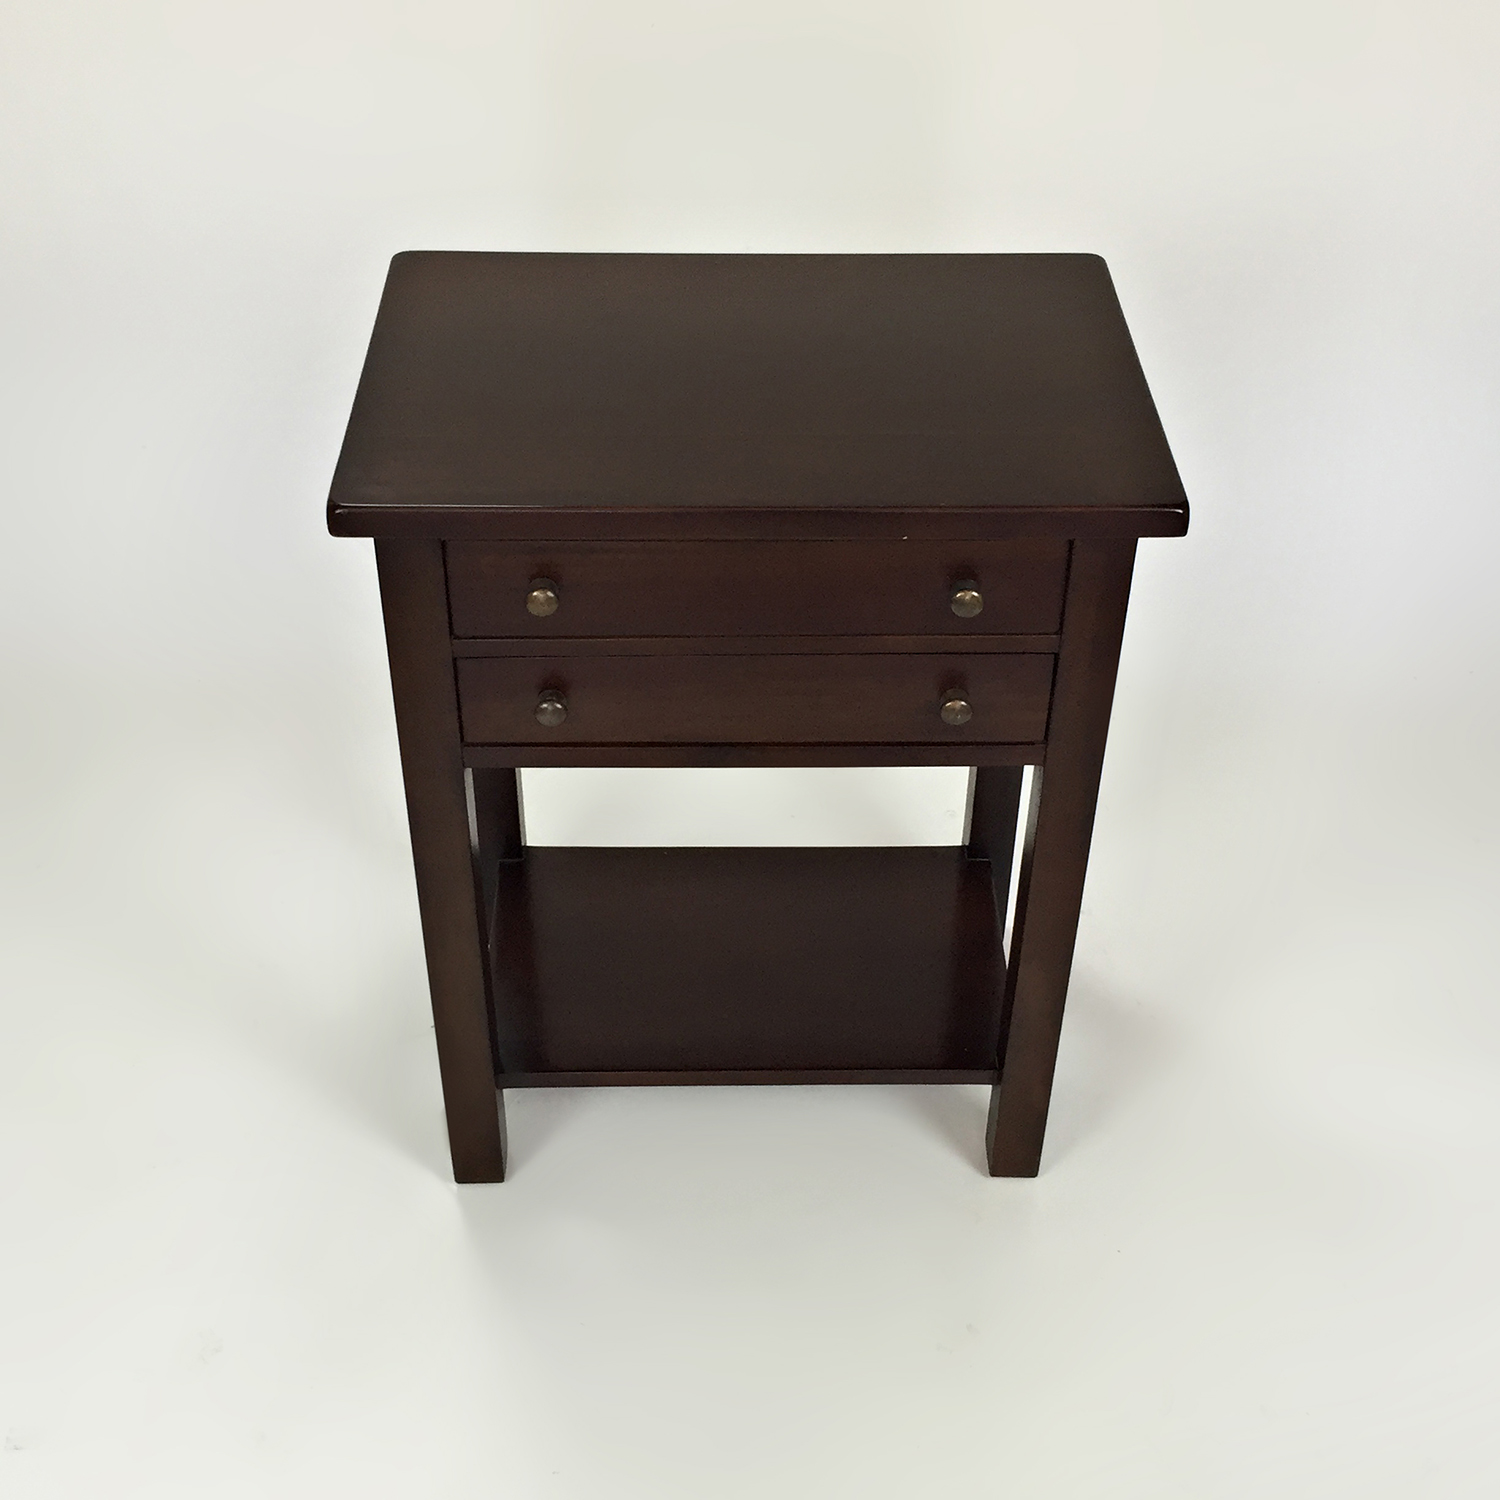 Home Goods Home Goods End Table dimensions